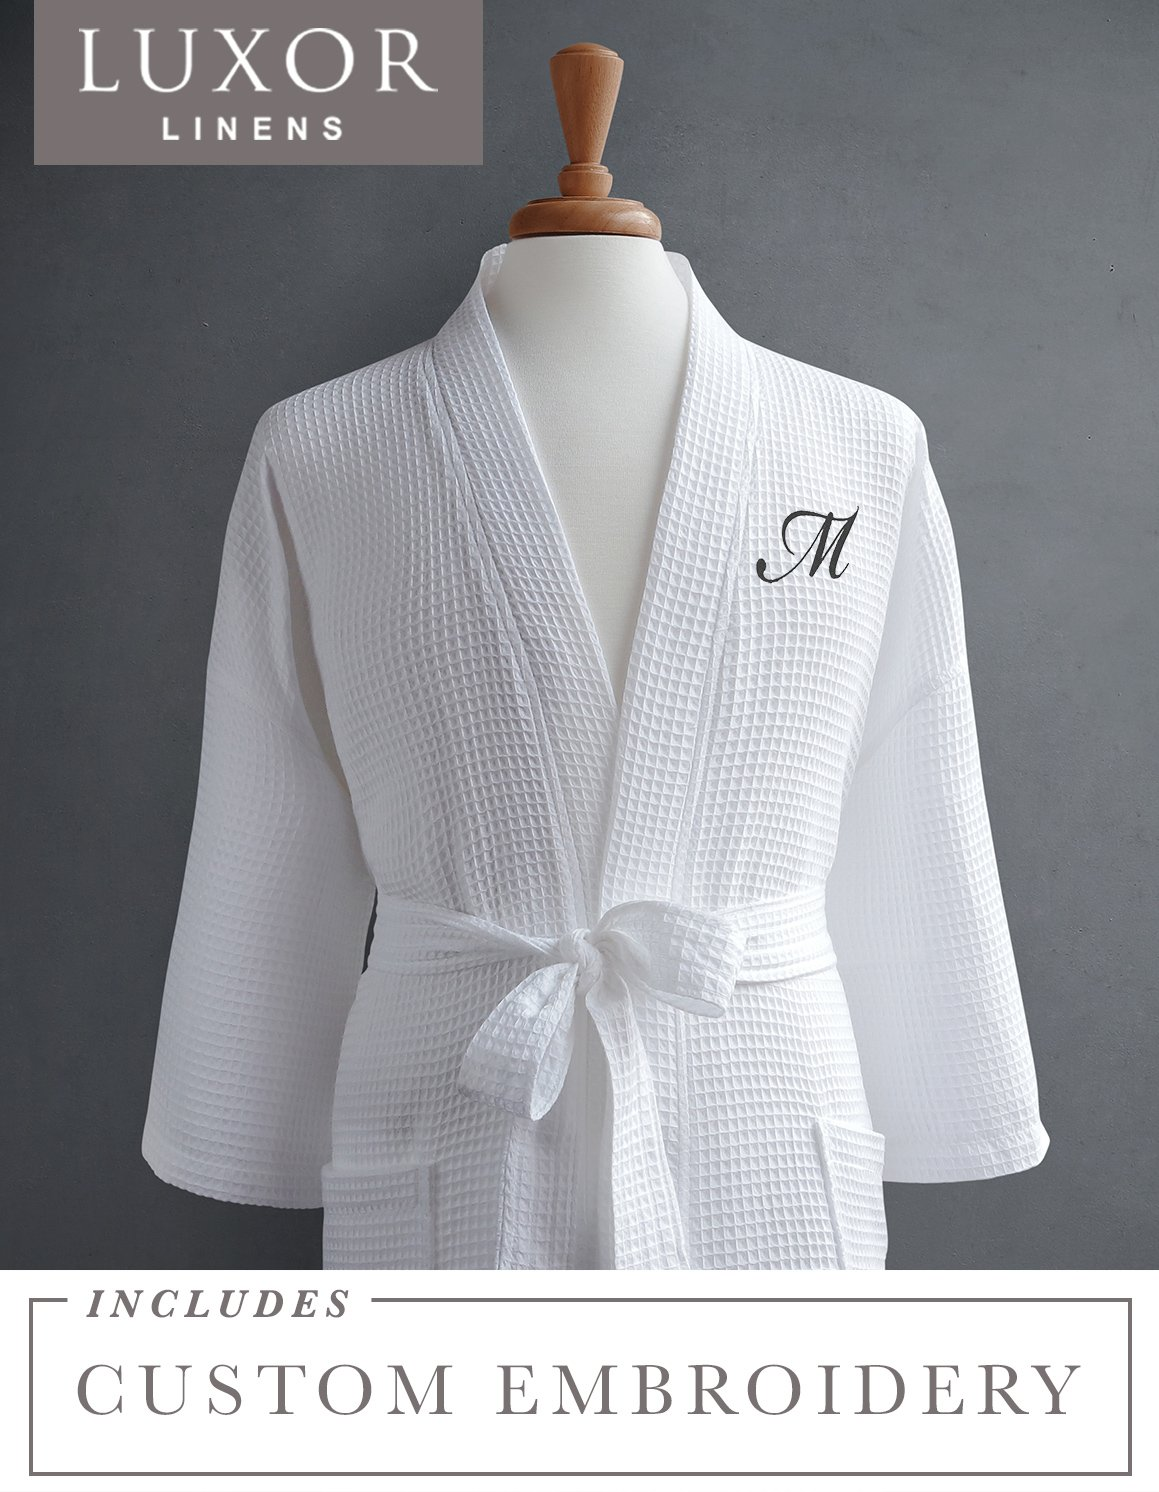 Luxor Linens Waffle Robe - 100% Egyptian Cotton - Unisex/One Size Fits Most - Waffle Weave, Spa Bathrobe, Luxurious, Soft, Plush Seasons Giovanni Collection - 1-pc Customizable